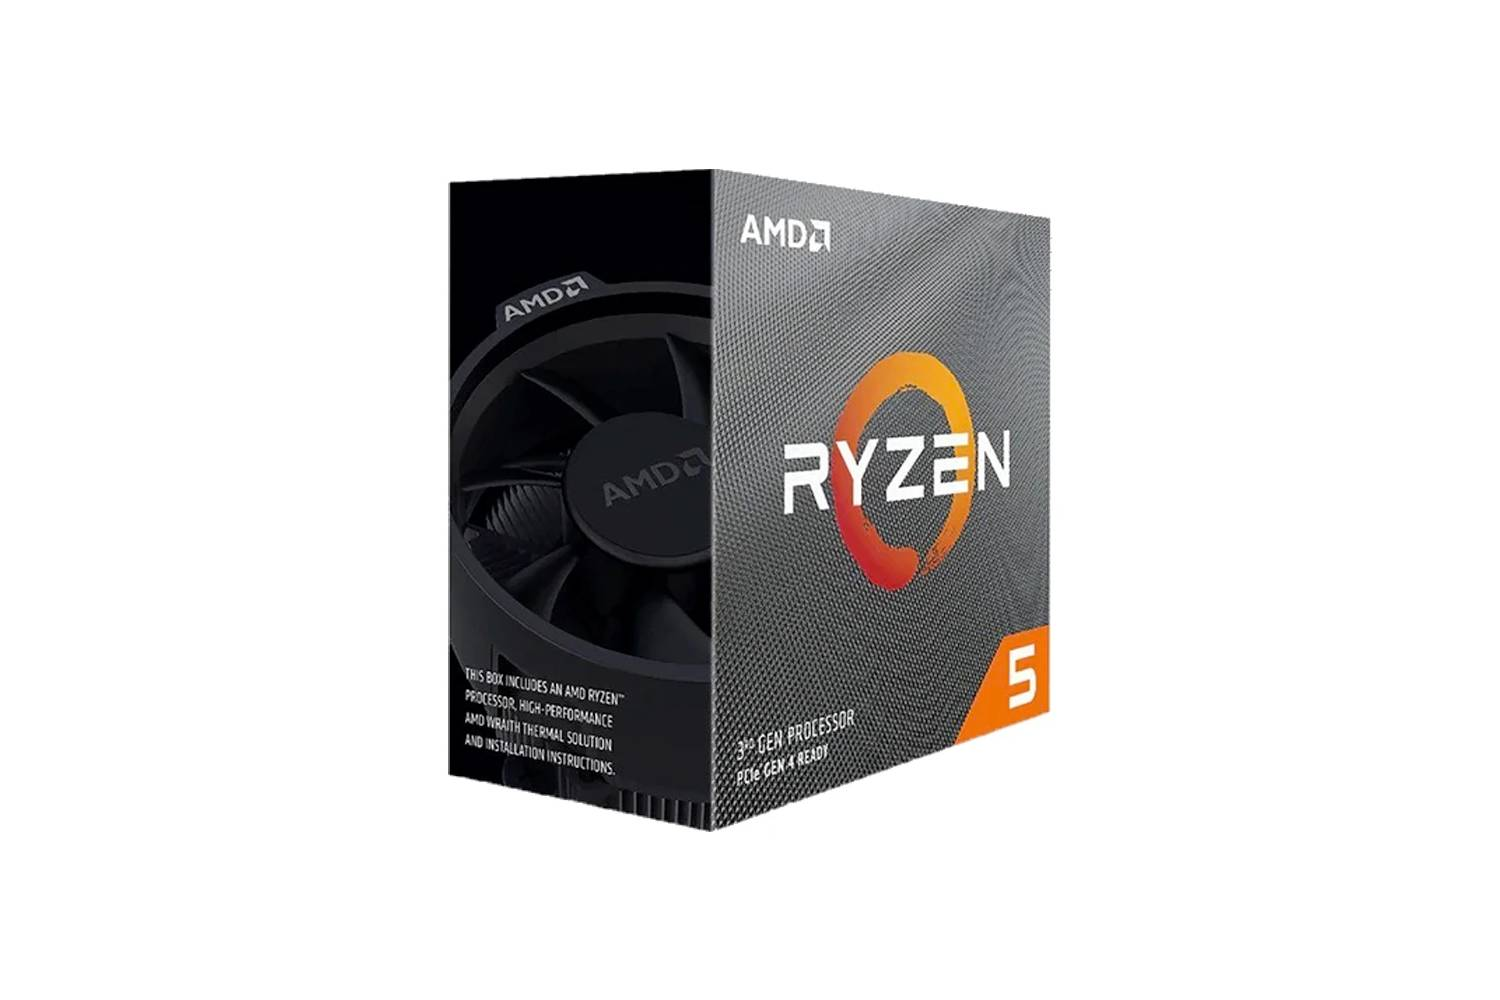 AMD Ryzen5 3400G with Radeon RX Vega 11 Graphics CPU-computerspace